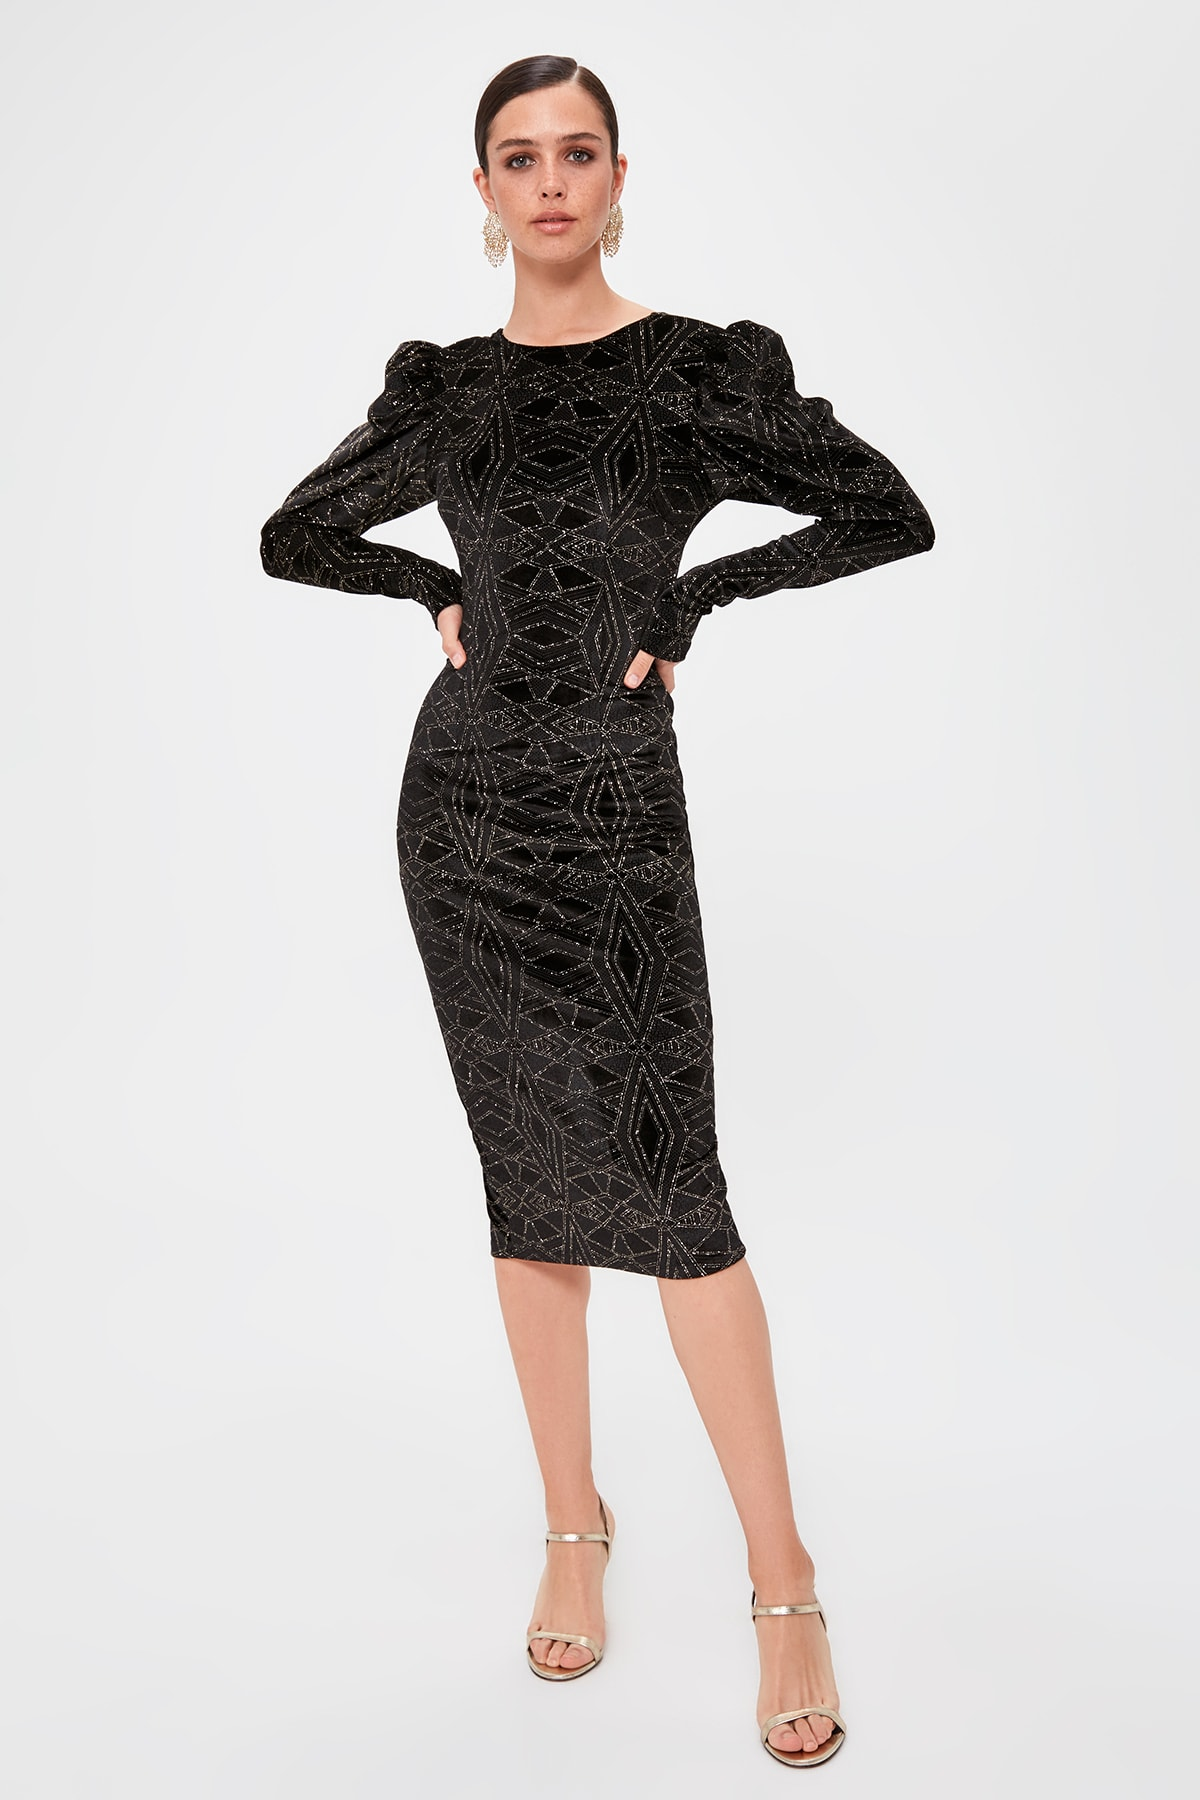 Trendyol Sleeve Detail Dress TPRAW20EL1382